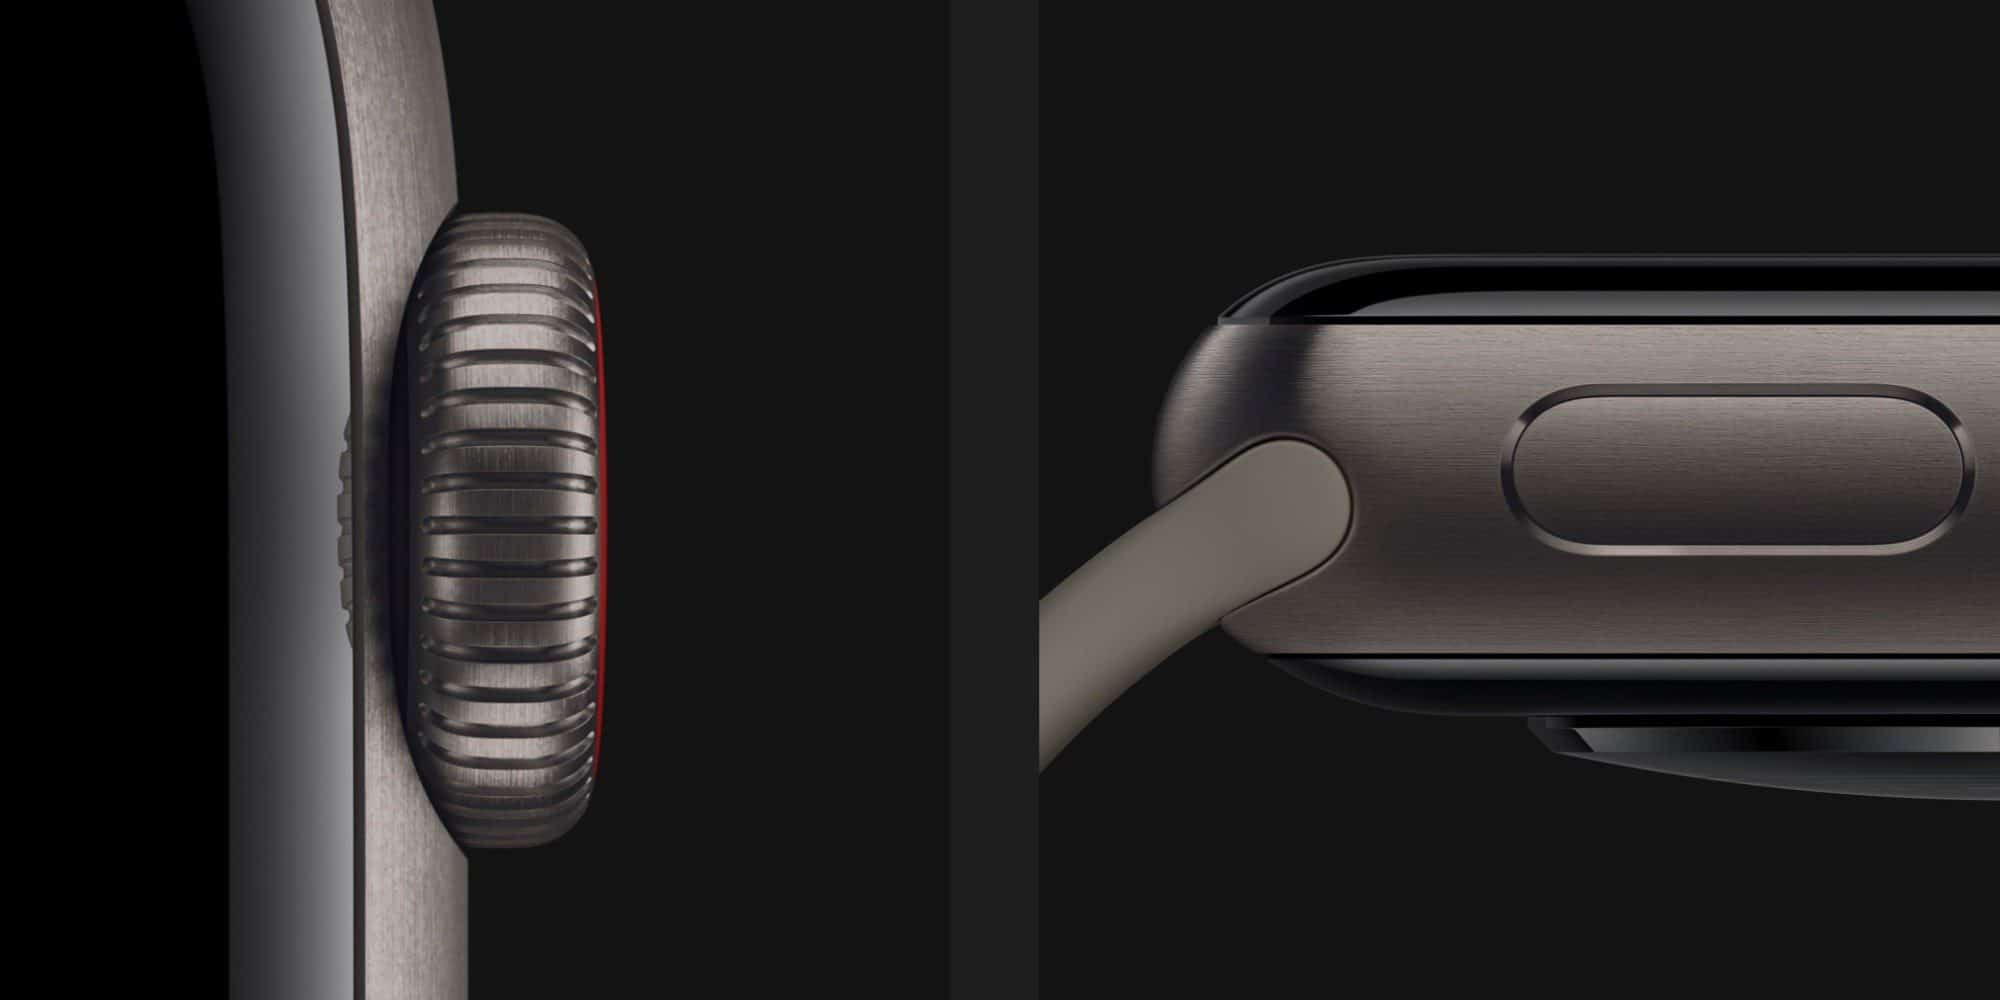 Apple Corrects Apple Watch Series 5 Weight on Stainless Steel and Titanium Models